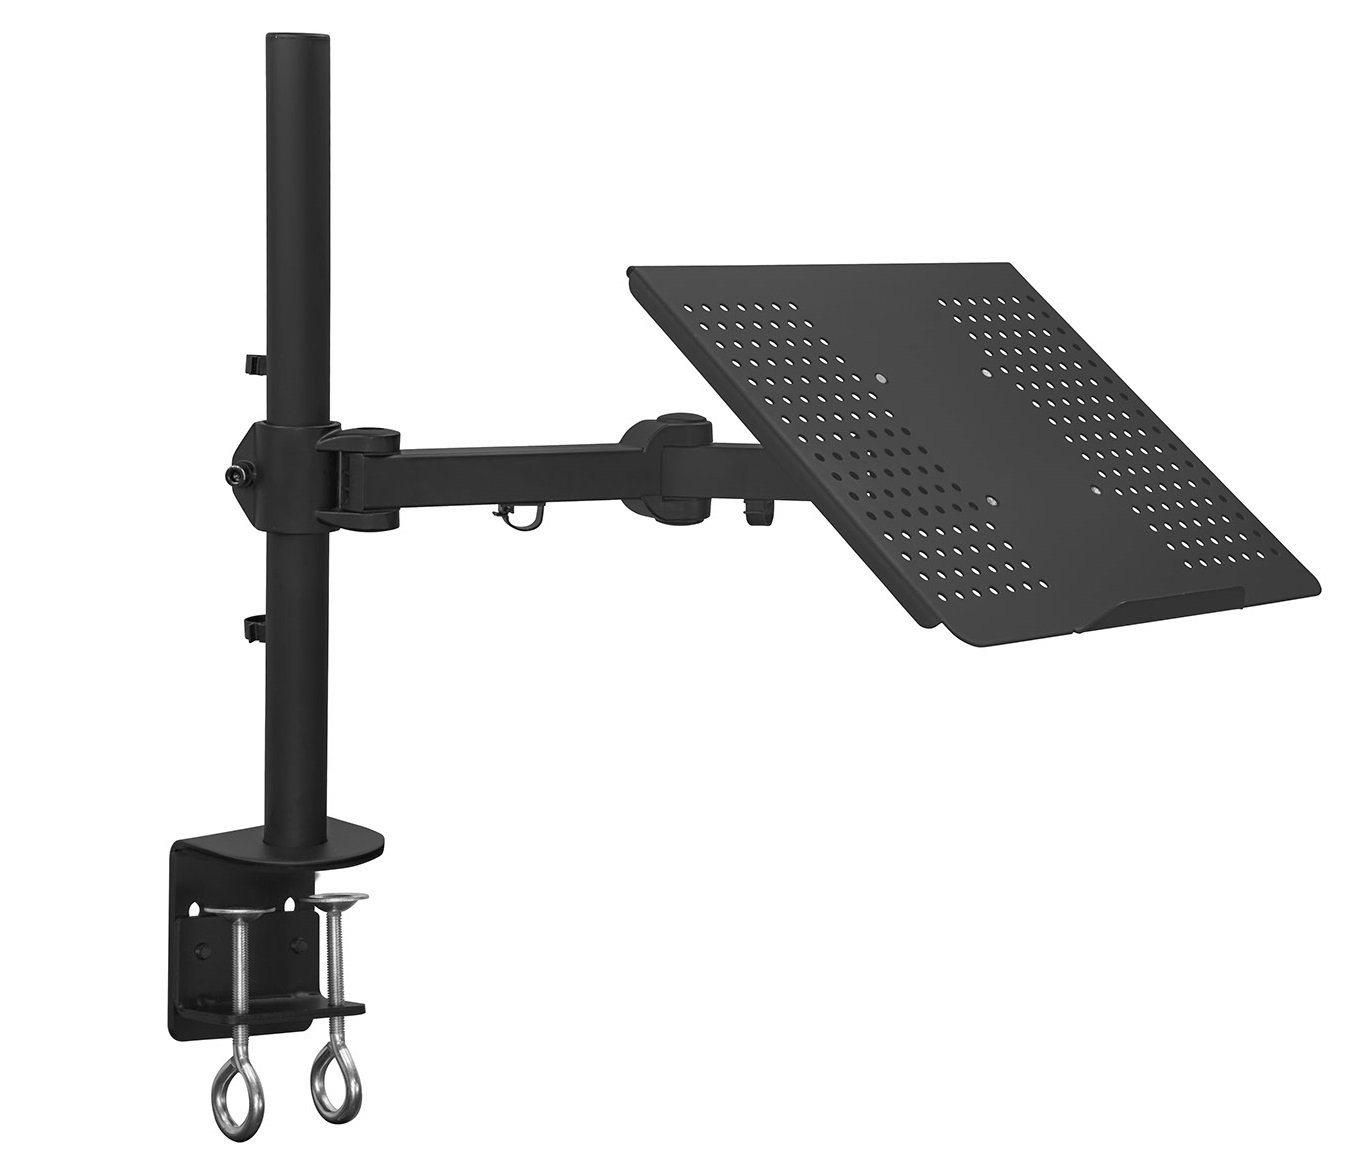 Mount-It! Laptop Notebook Desk Mount Stand with Full Motion Height Adjustable Holder, Articulating Vented Cooling Platform, Fits Up to 17 Inch Computers, Clamp Mounting, 22 Lb Capacity Black (MI-3352LT) by Mount-It!